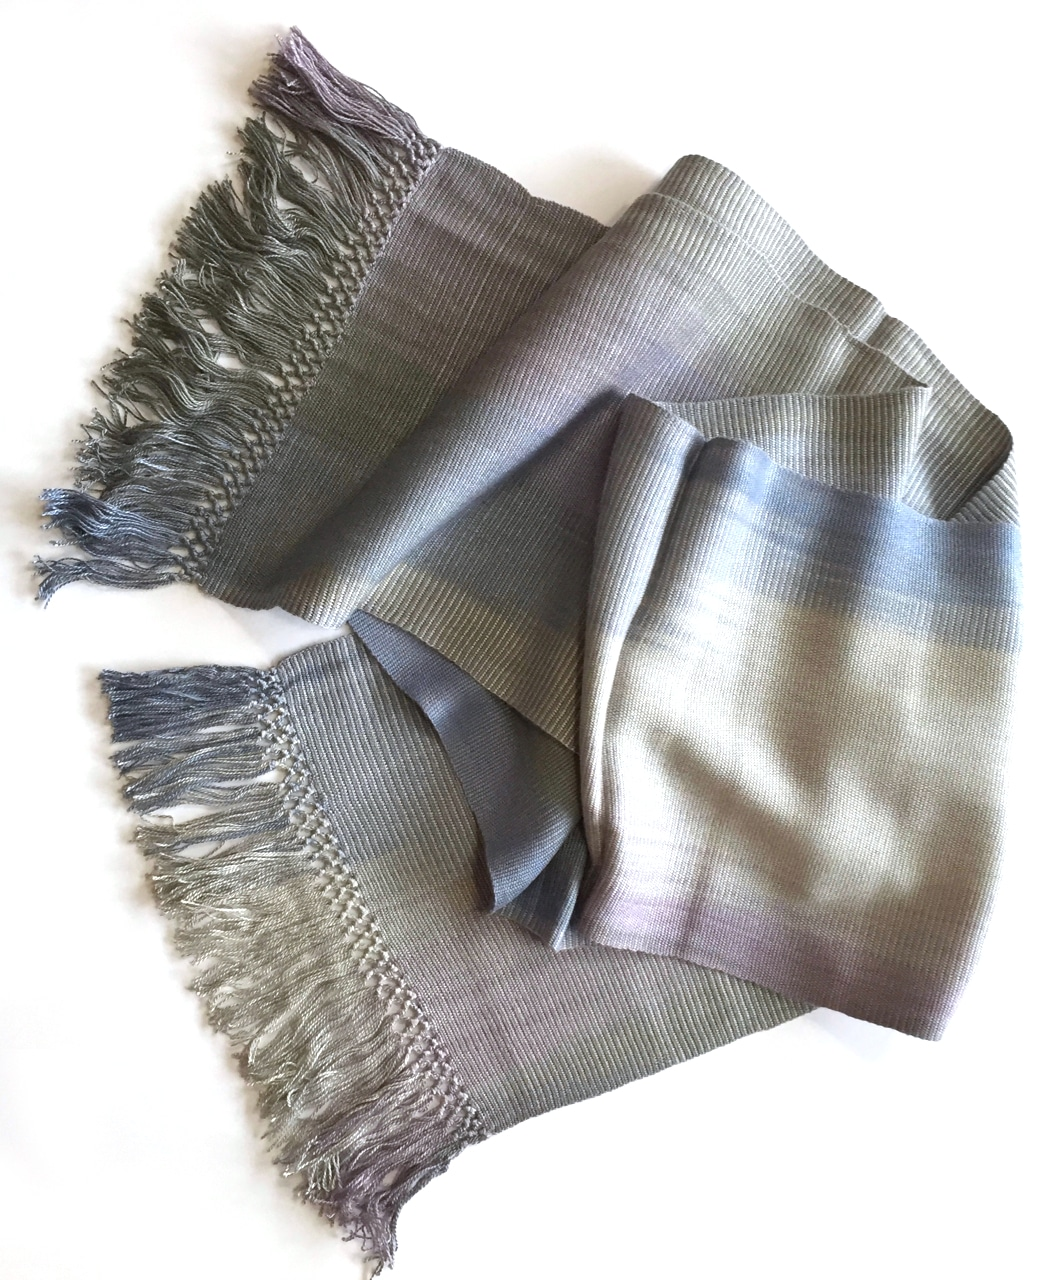 Lilac, Pale Blue, Gray - Lightweight Bamboo Handwoven Scarf 8 x 68